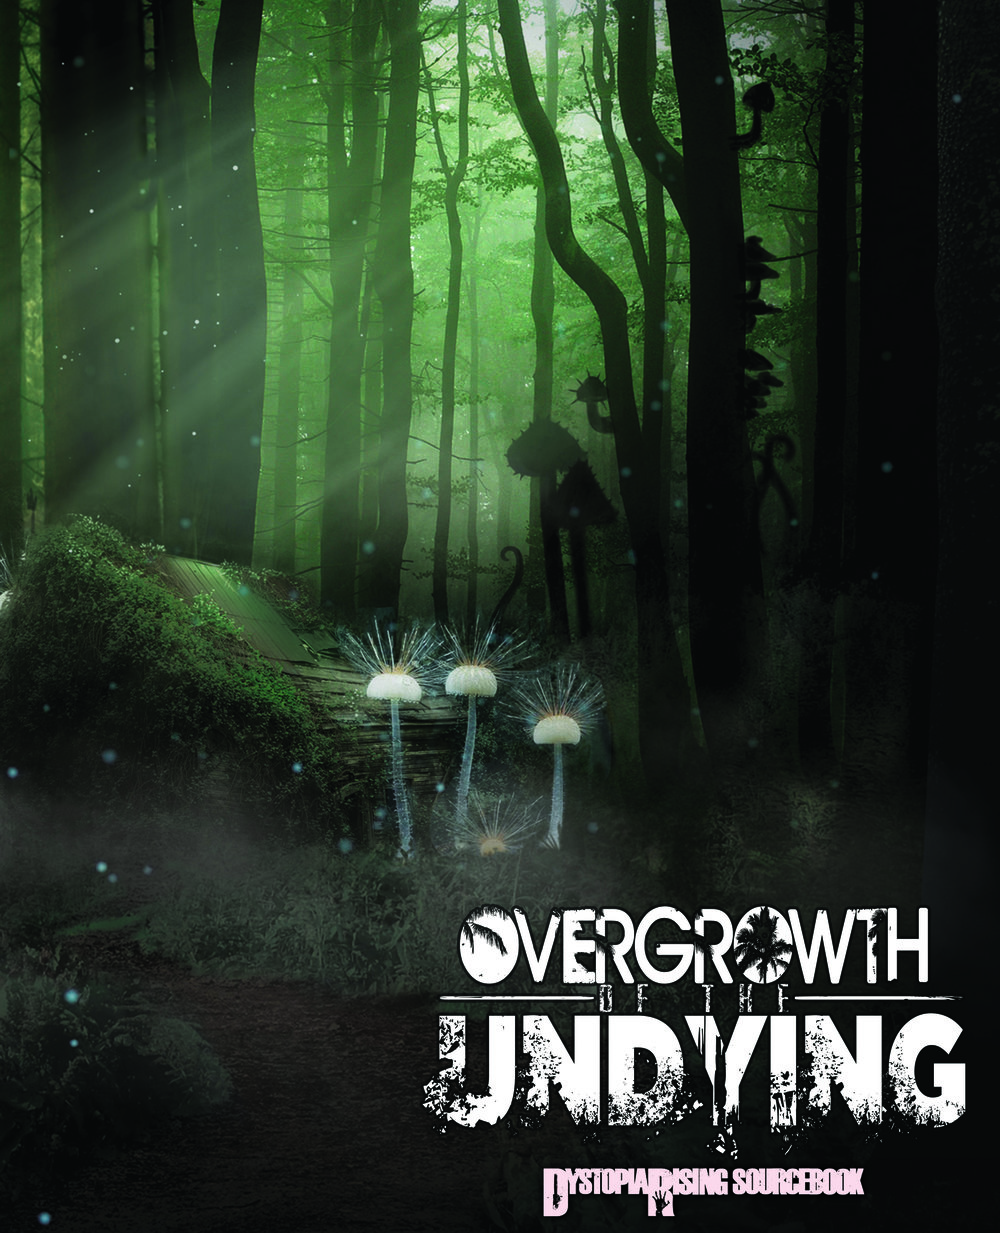 Overgrowth Front Cover.jpg